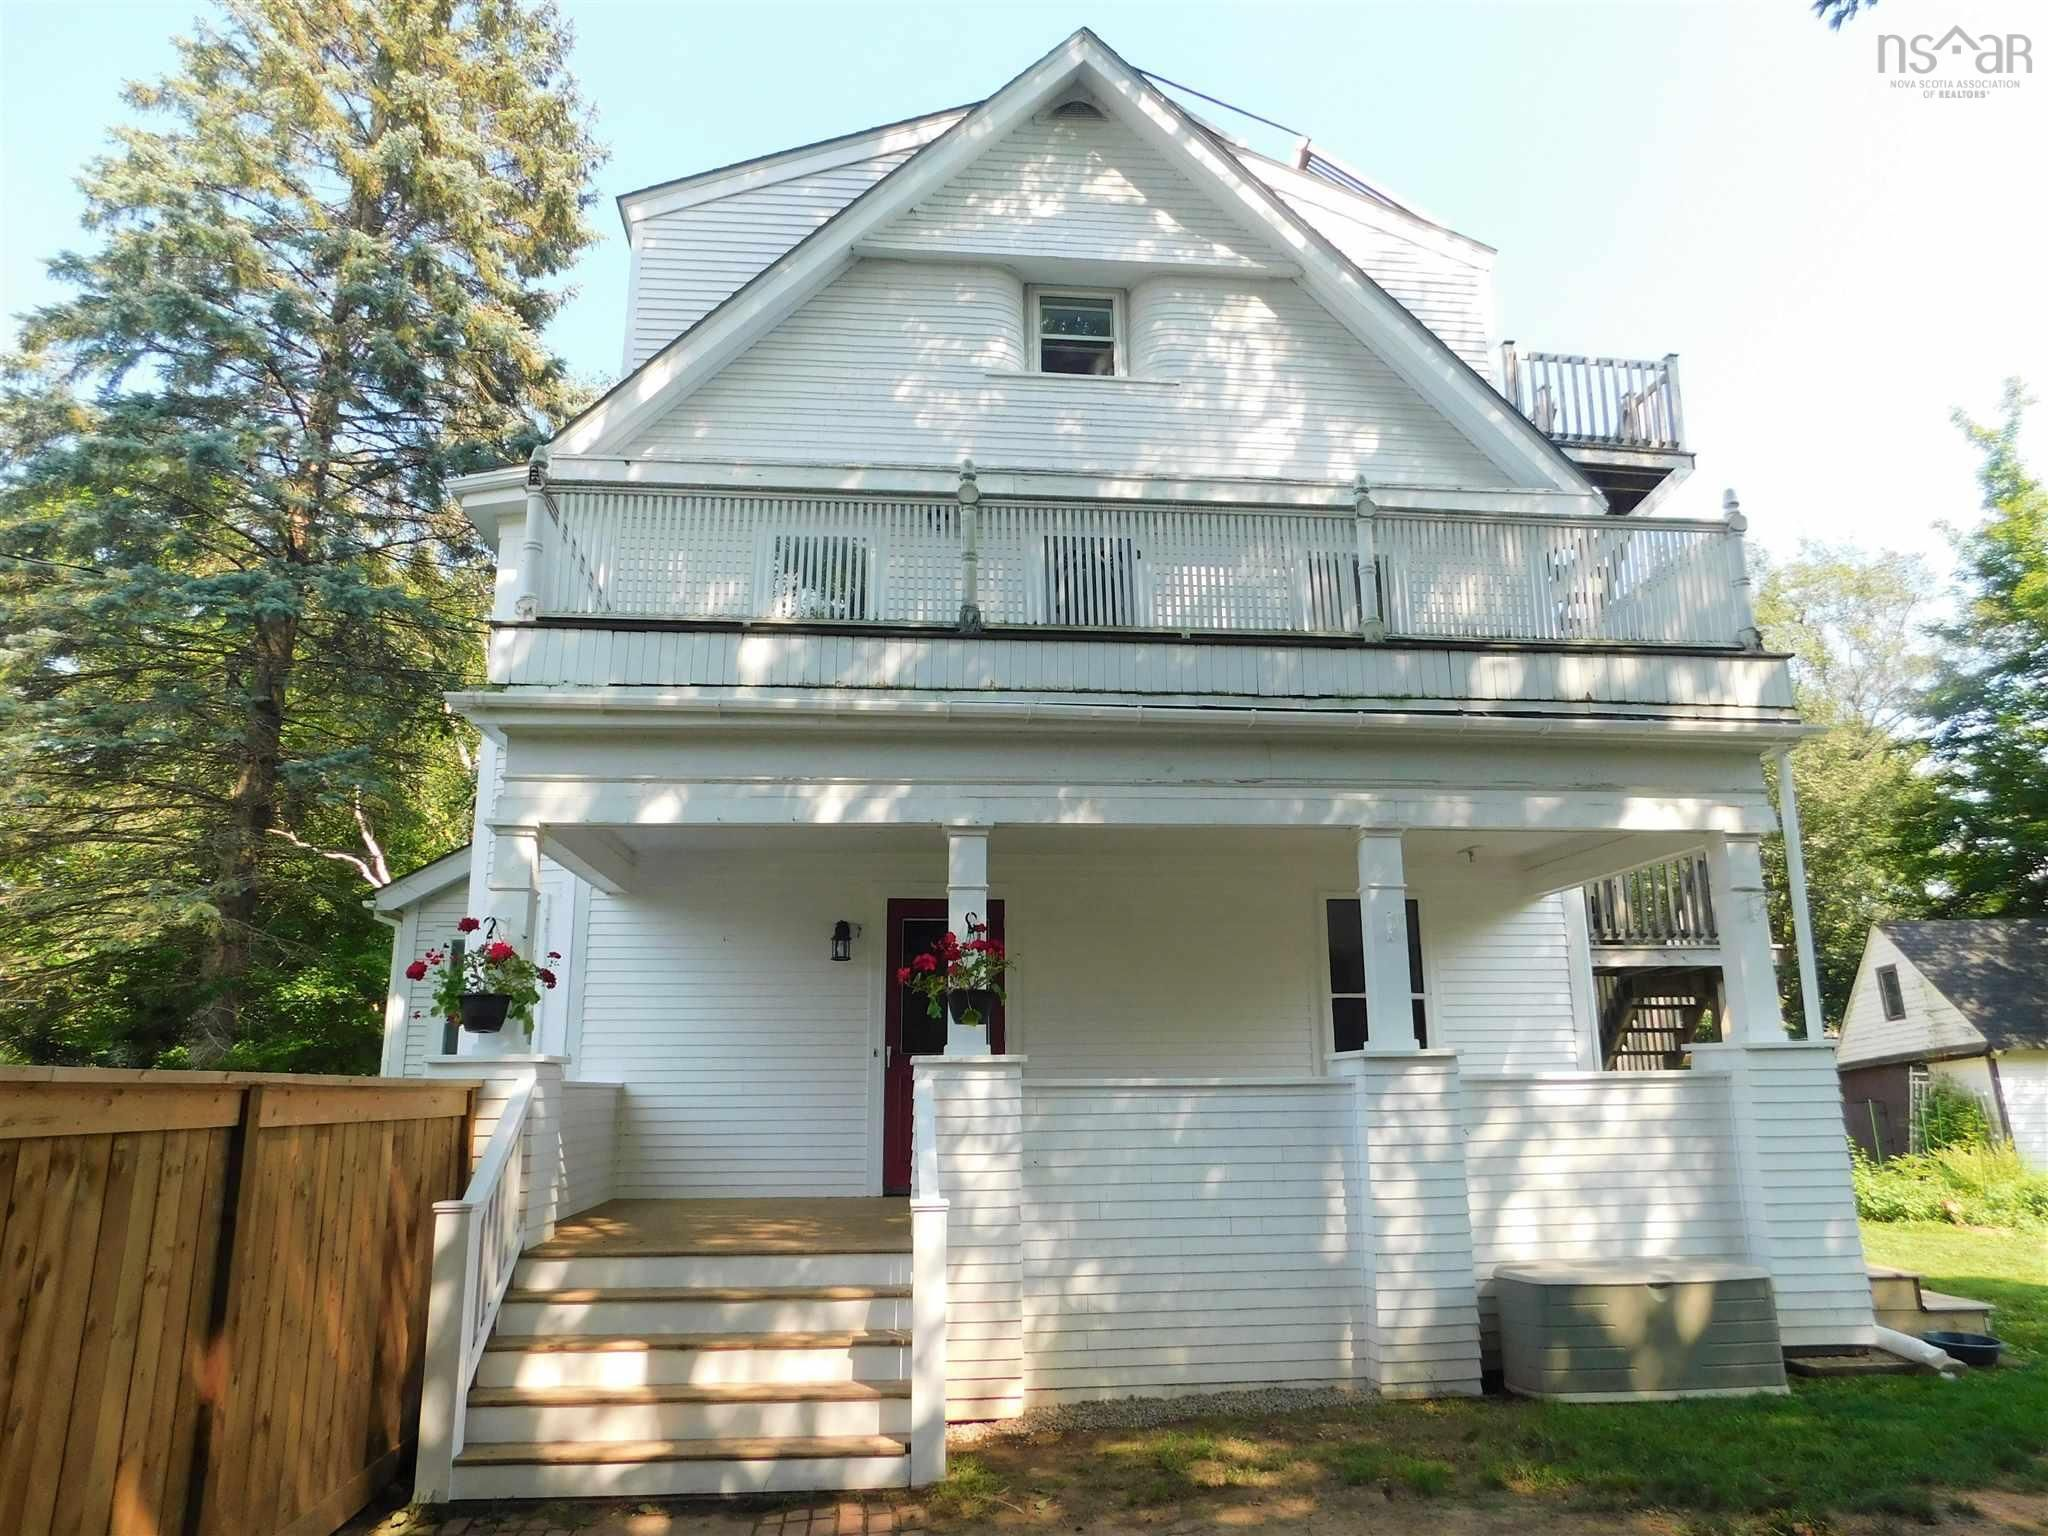 Main Photo: 15 LOCUST Avenue in Wolfville: 404-Kings County Multi-Family for sale (Annapolis Valley)  : MLS®# 202121091